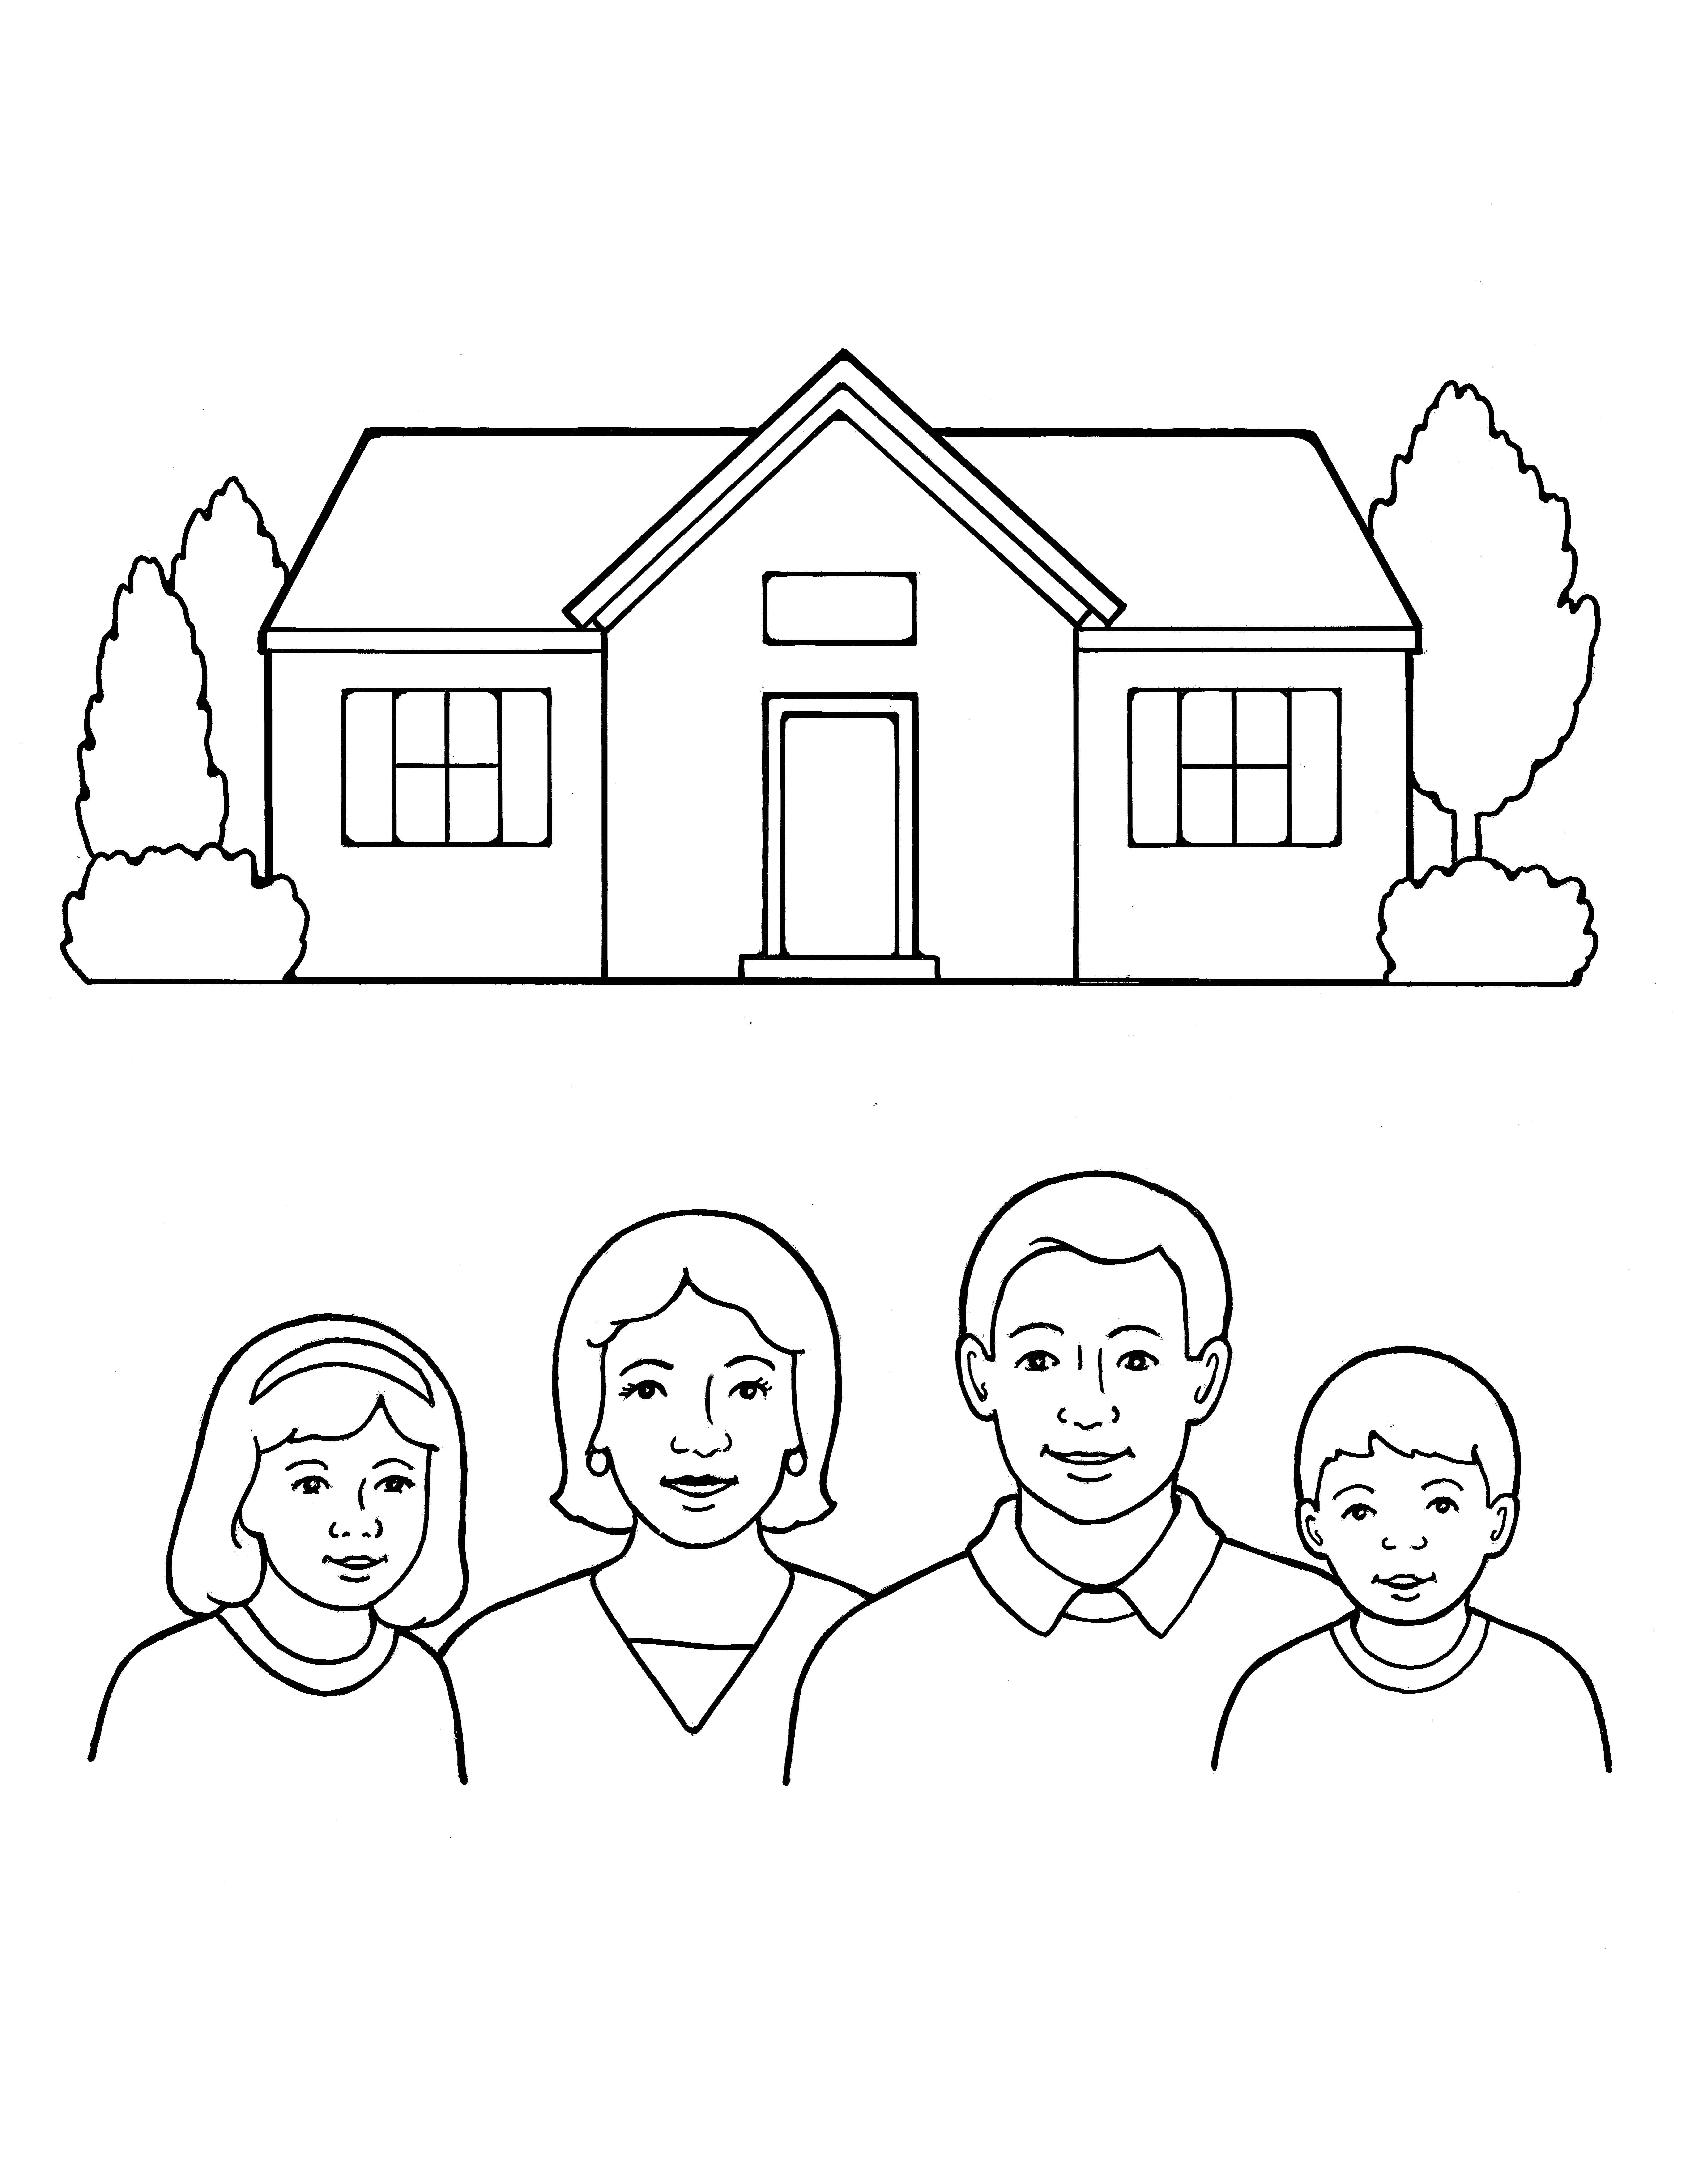 An illustration of a home.